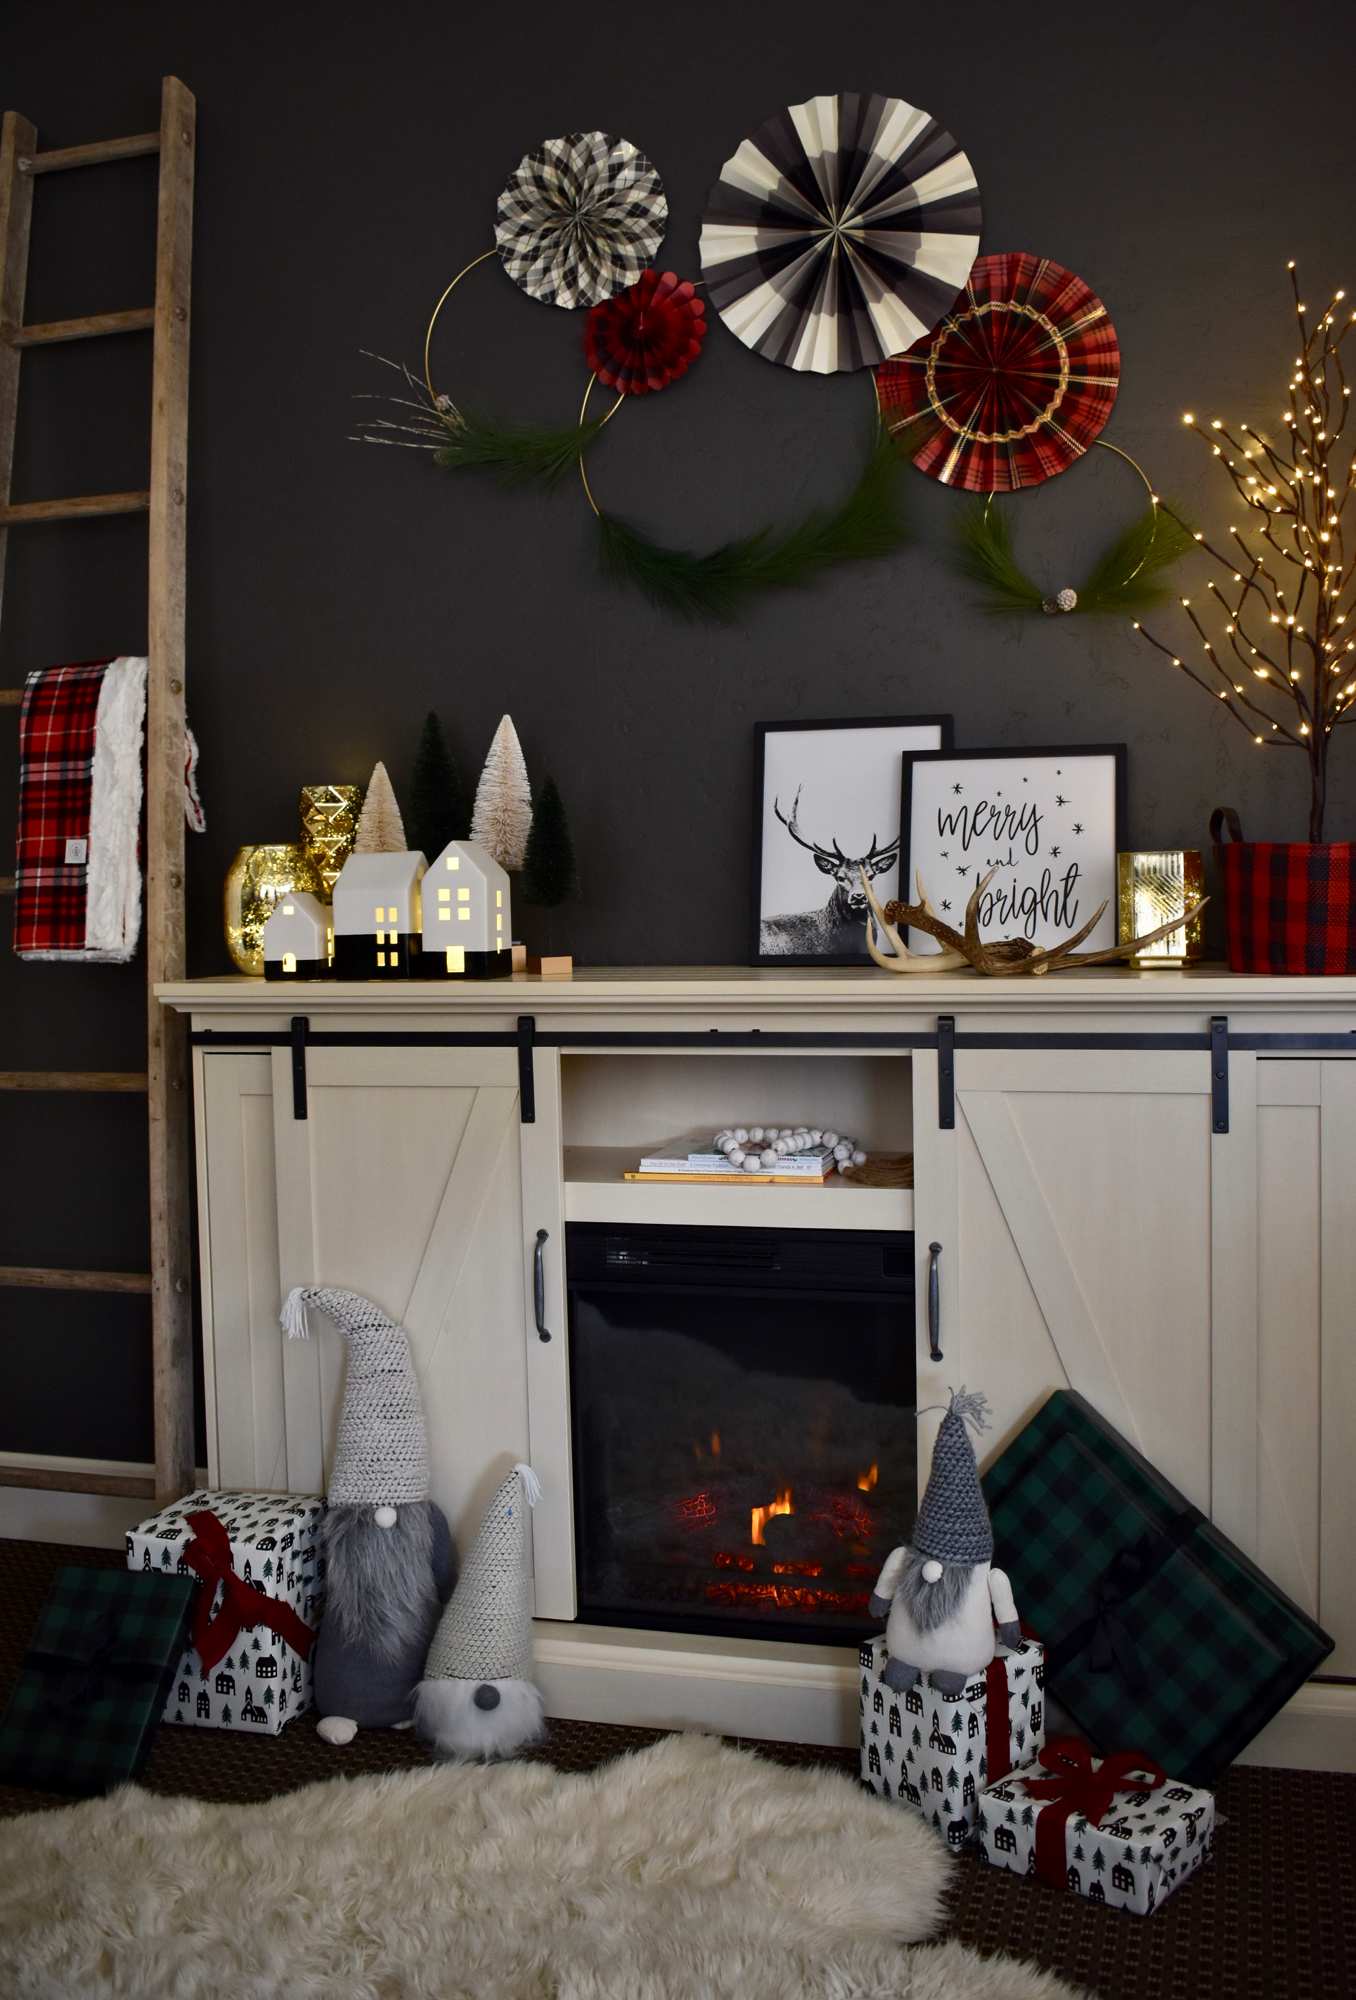 How To Decorate Your Small Space So It S Homey For Christmas